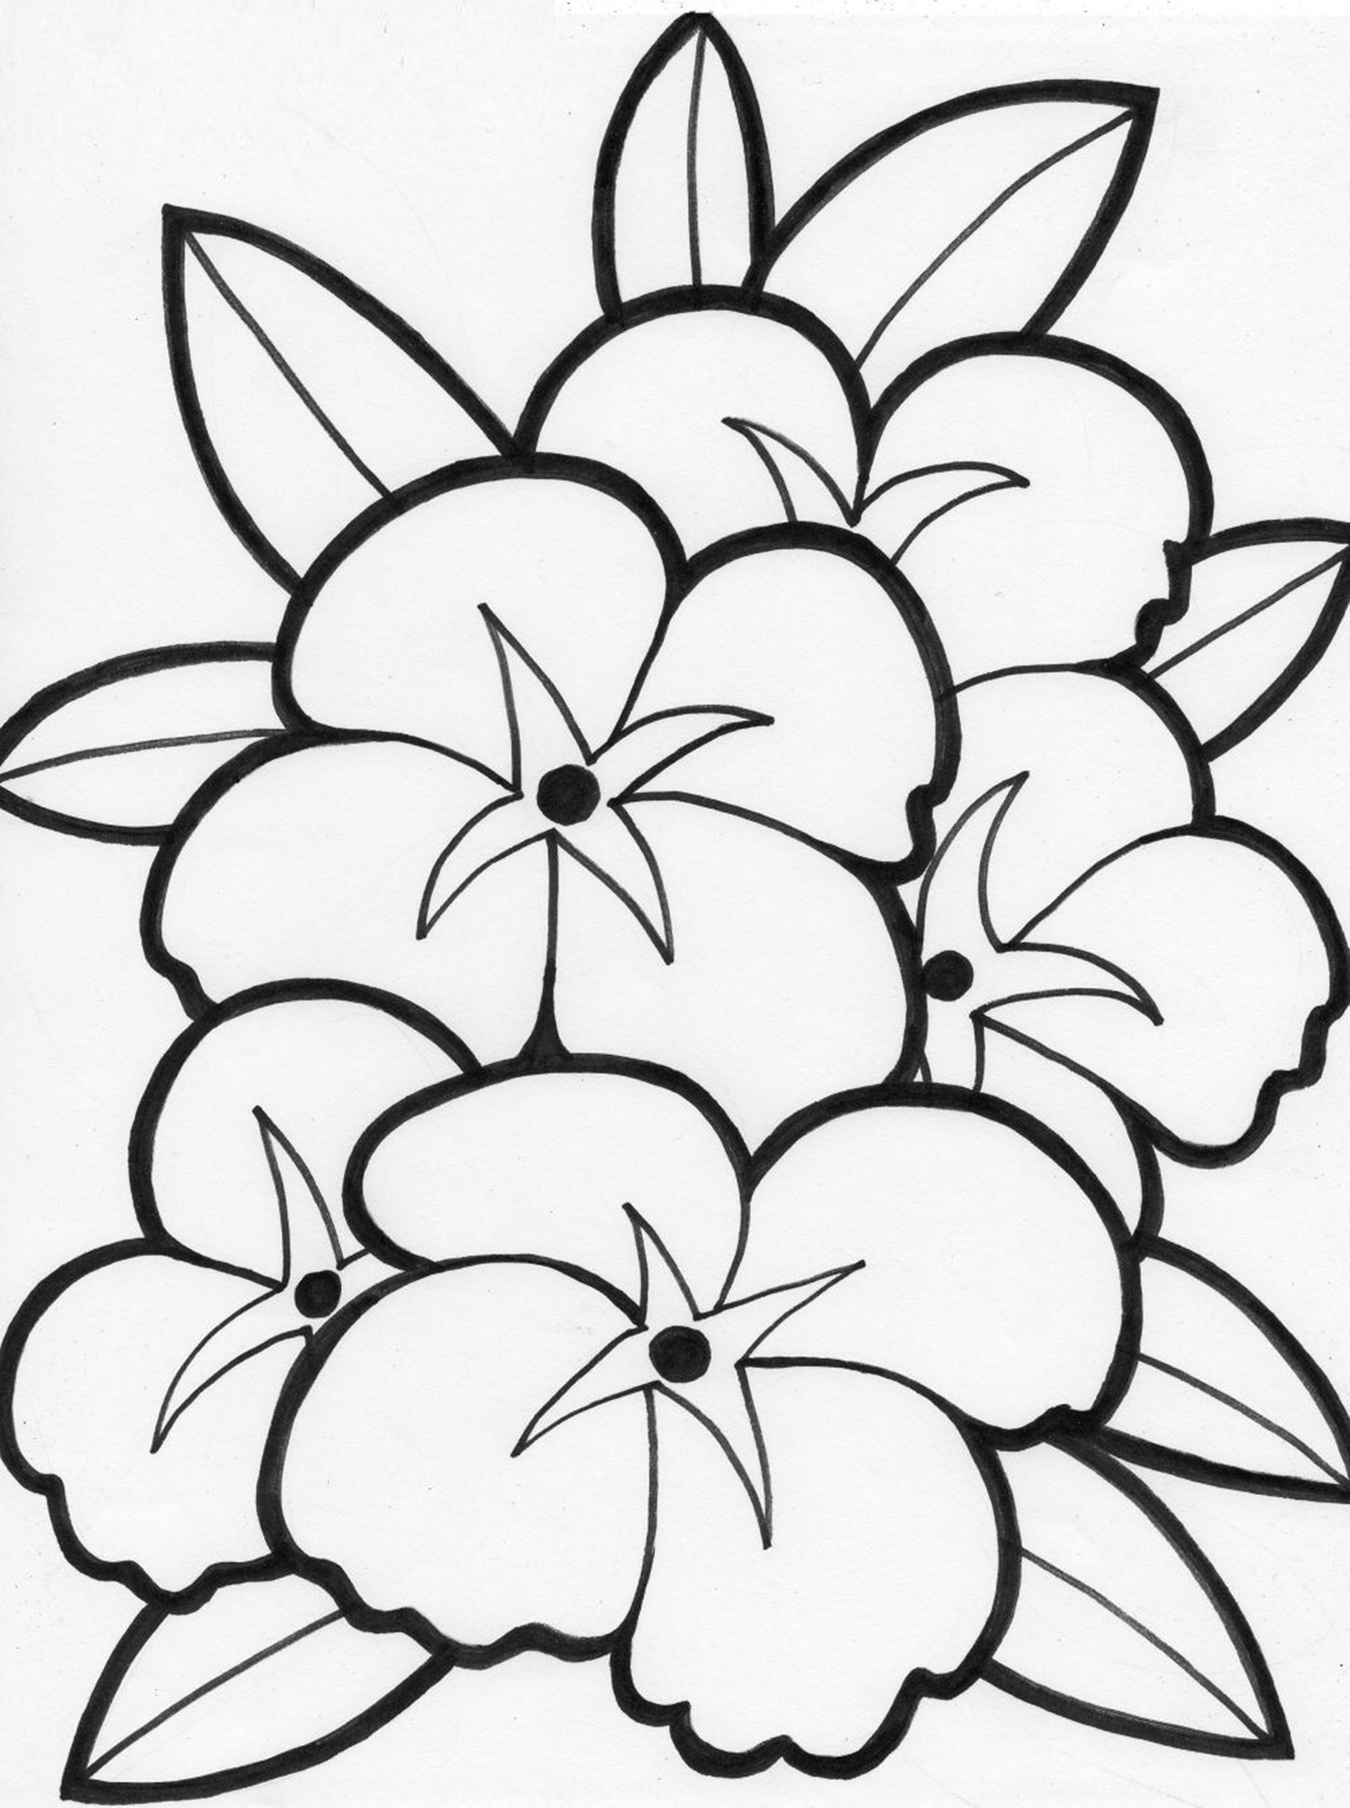 Cute Flowers Coloring Pages : flowers, coloring, pages, Printable, Flower, Coloring, Pages